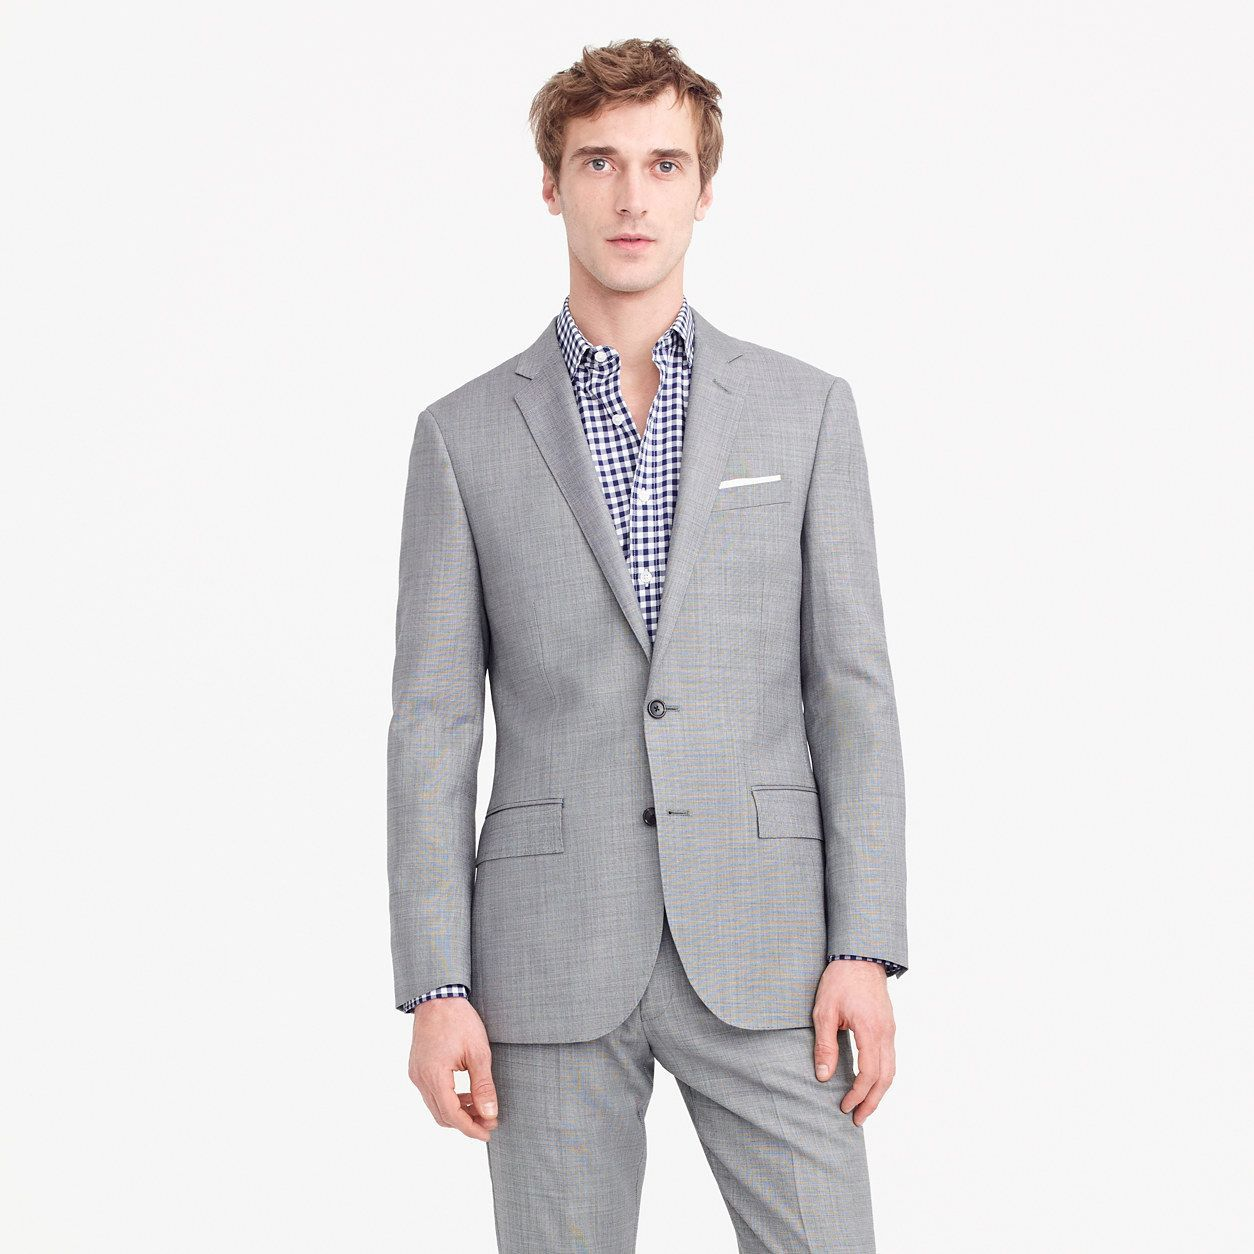 0f2aae3884ae5 J. Crew Mens Suit Sizing « Alzheimer's Network of Oregon